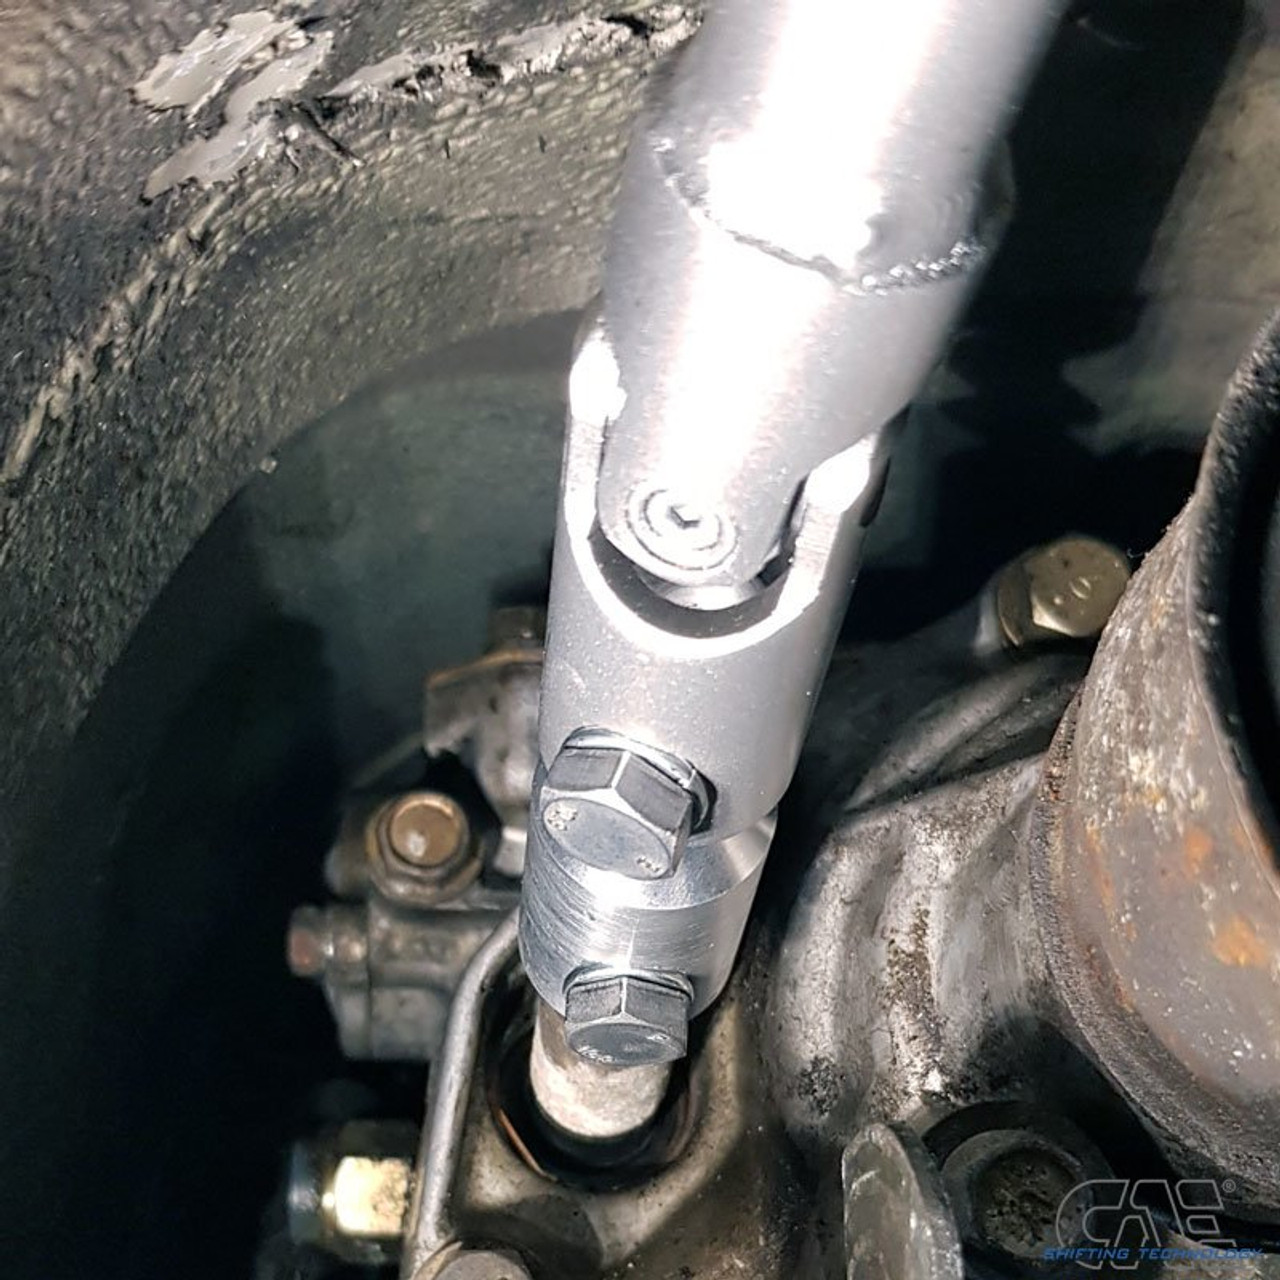 CAE Shift Rod Connector / Adapter - Subaru '08-'14 WRX - 5 Speed